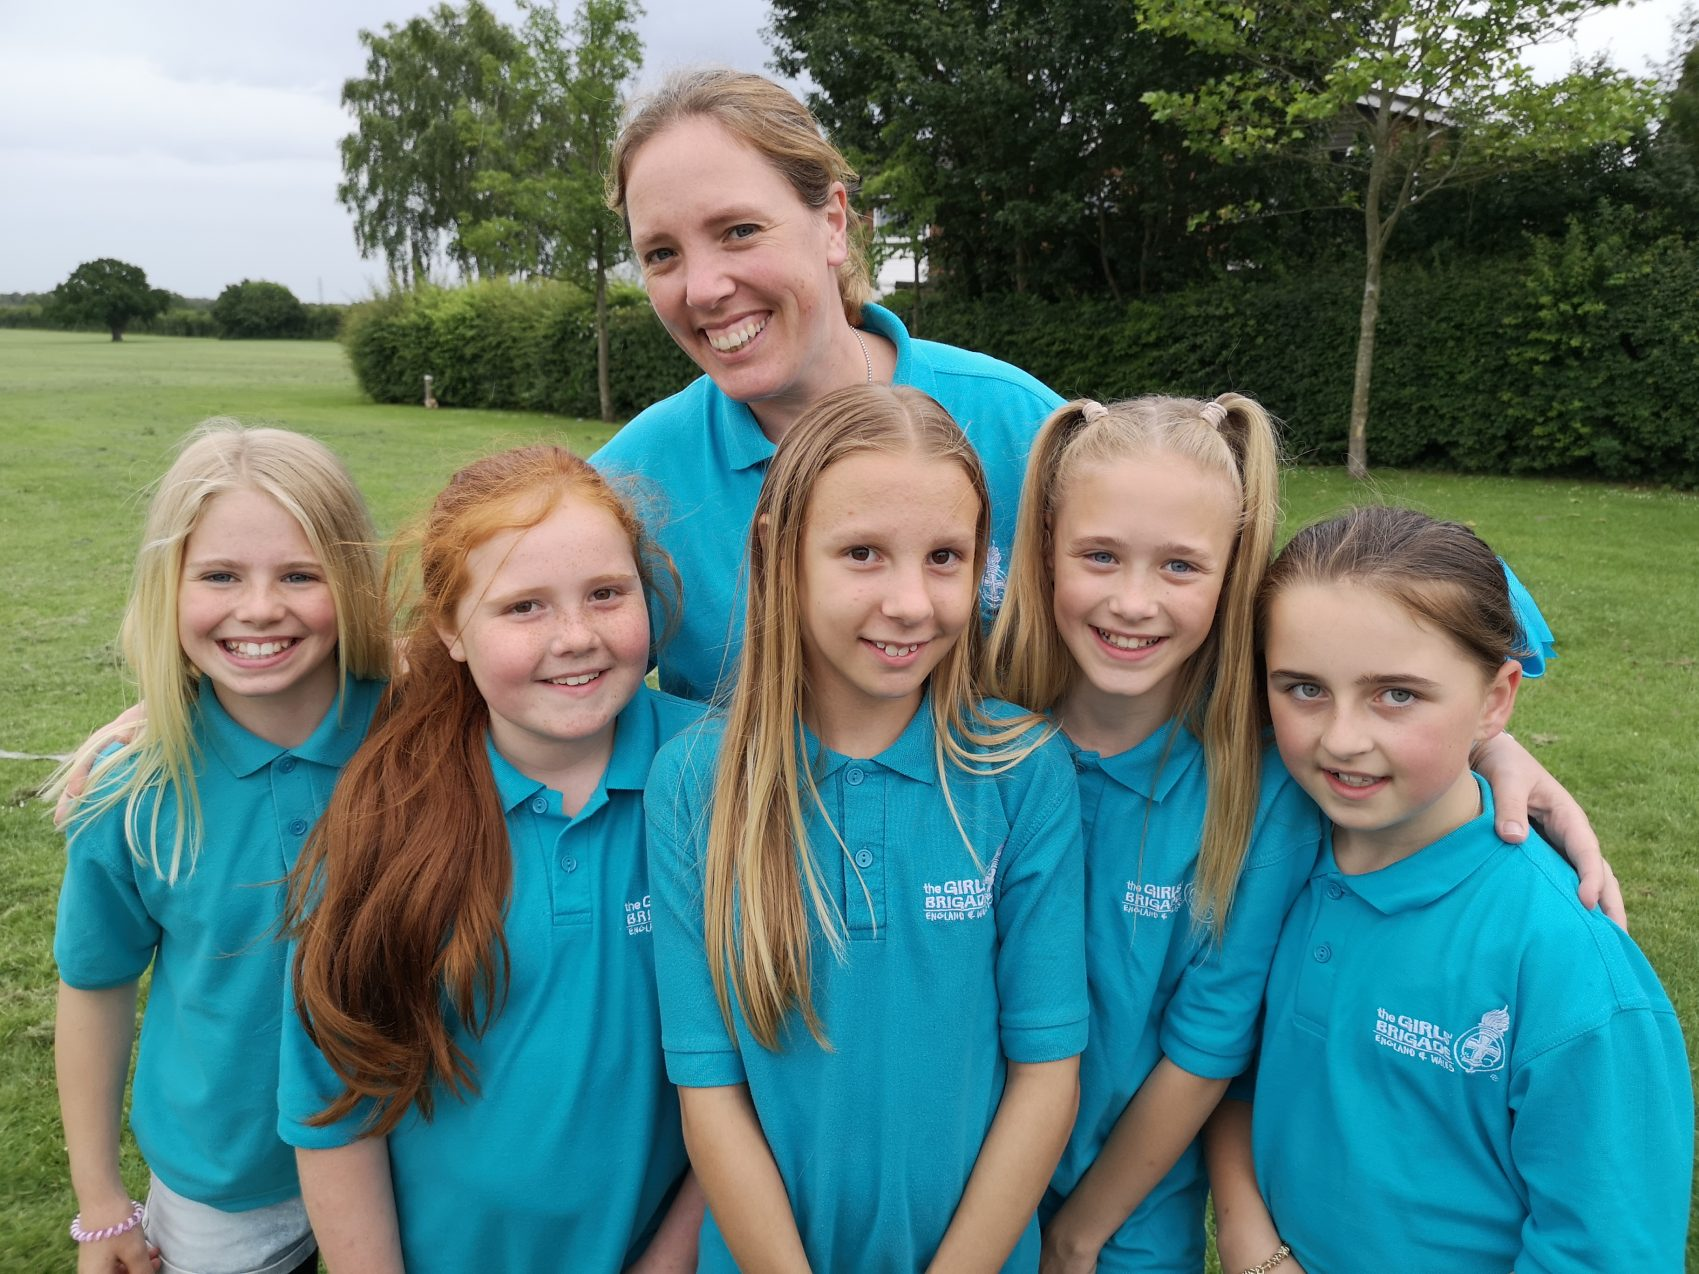 Girls' Brigade volunteer with arms around n:gage girls